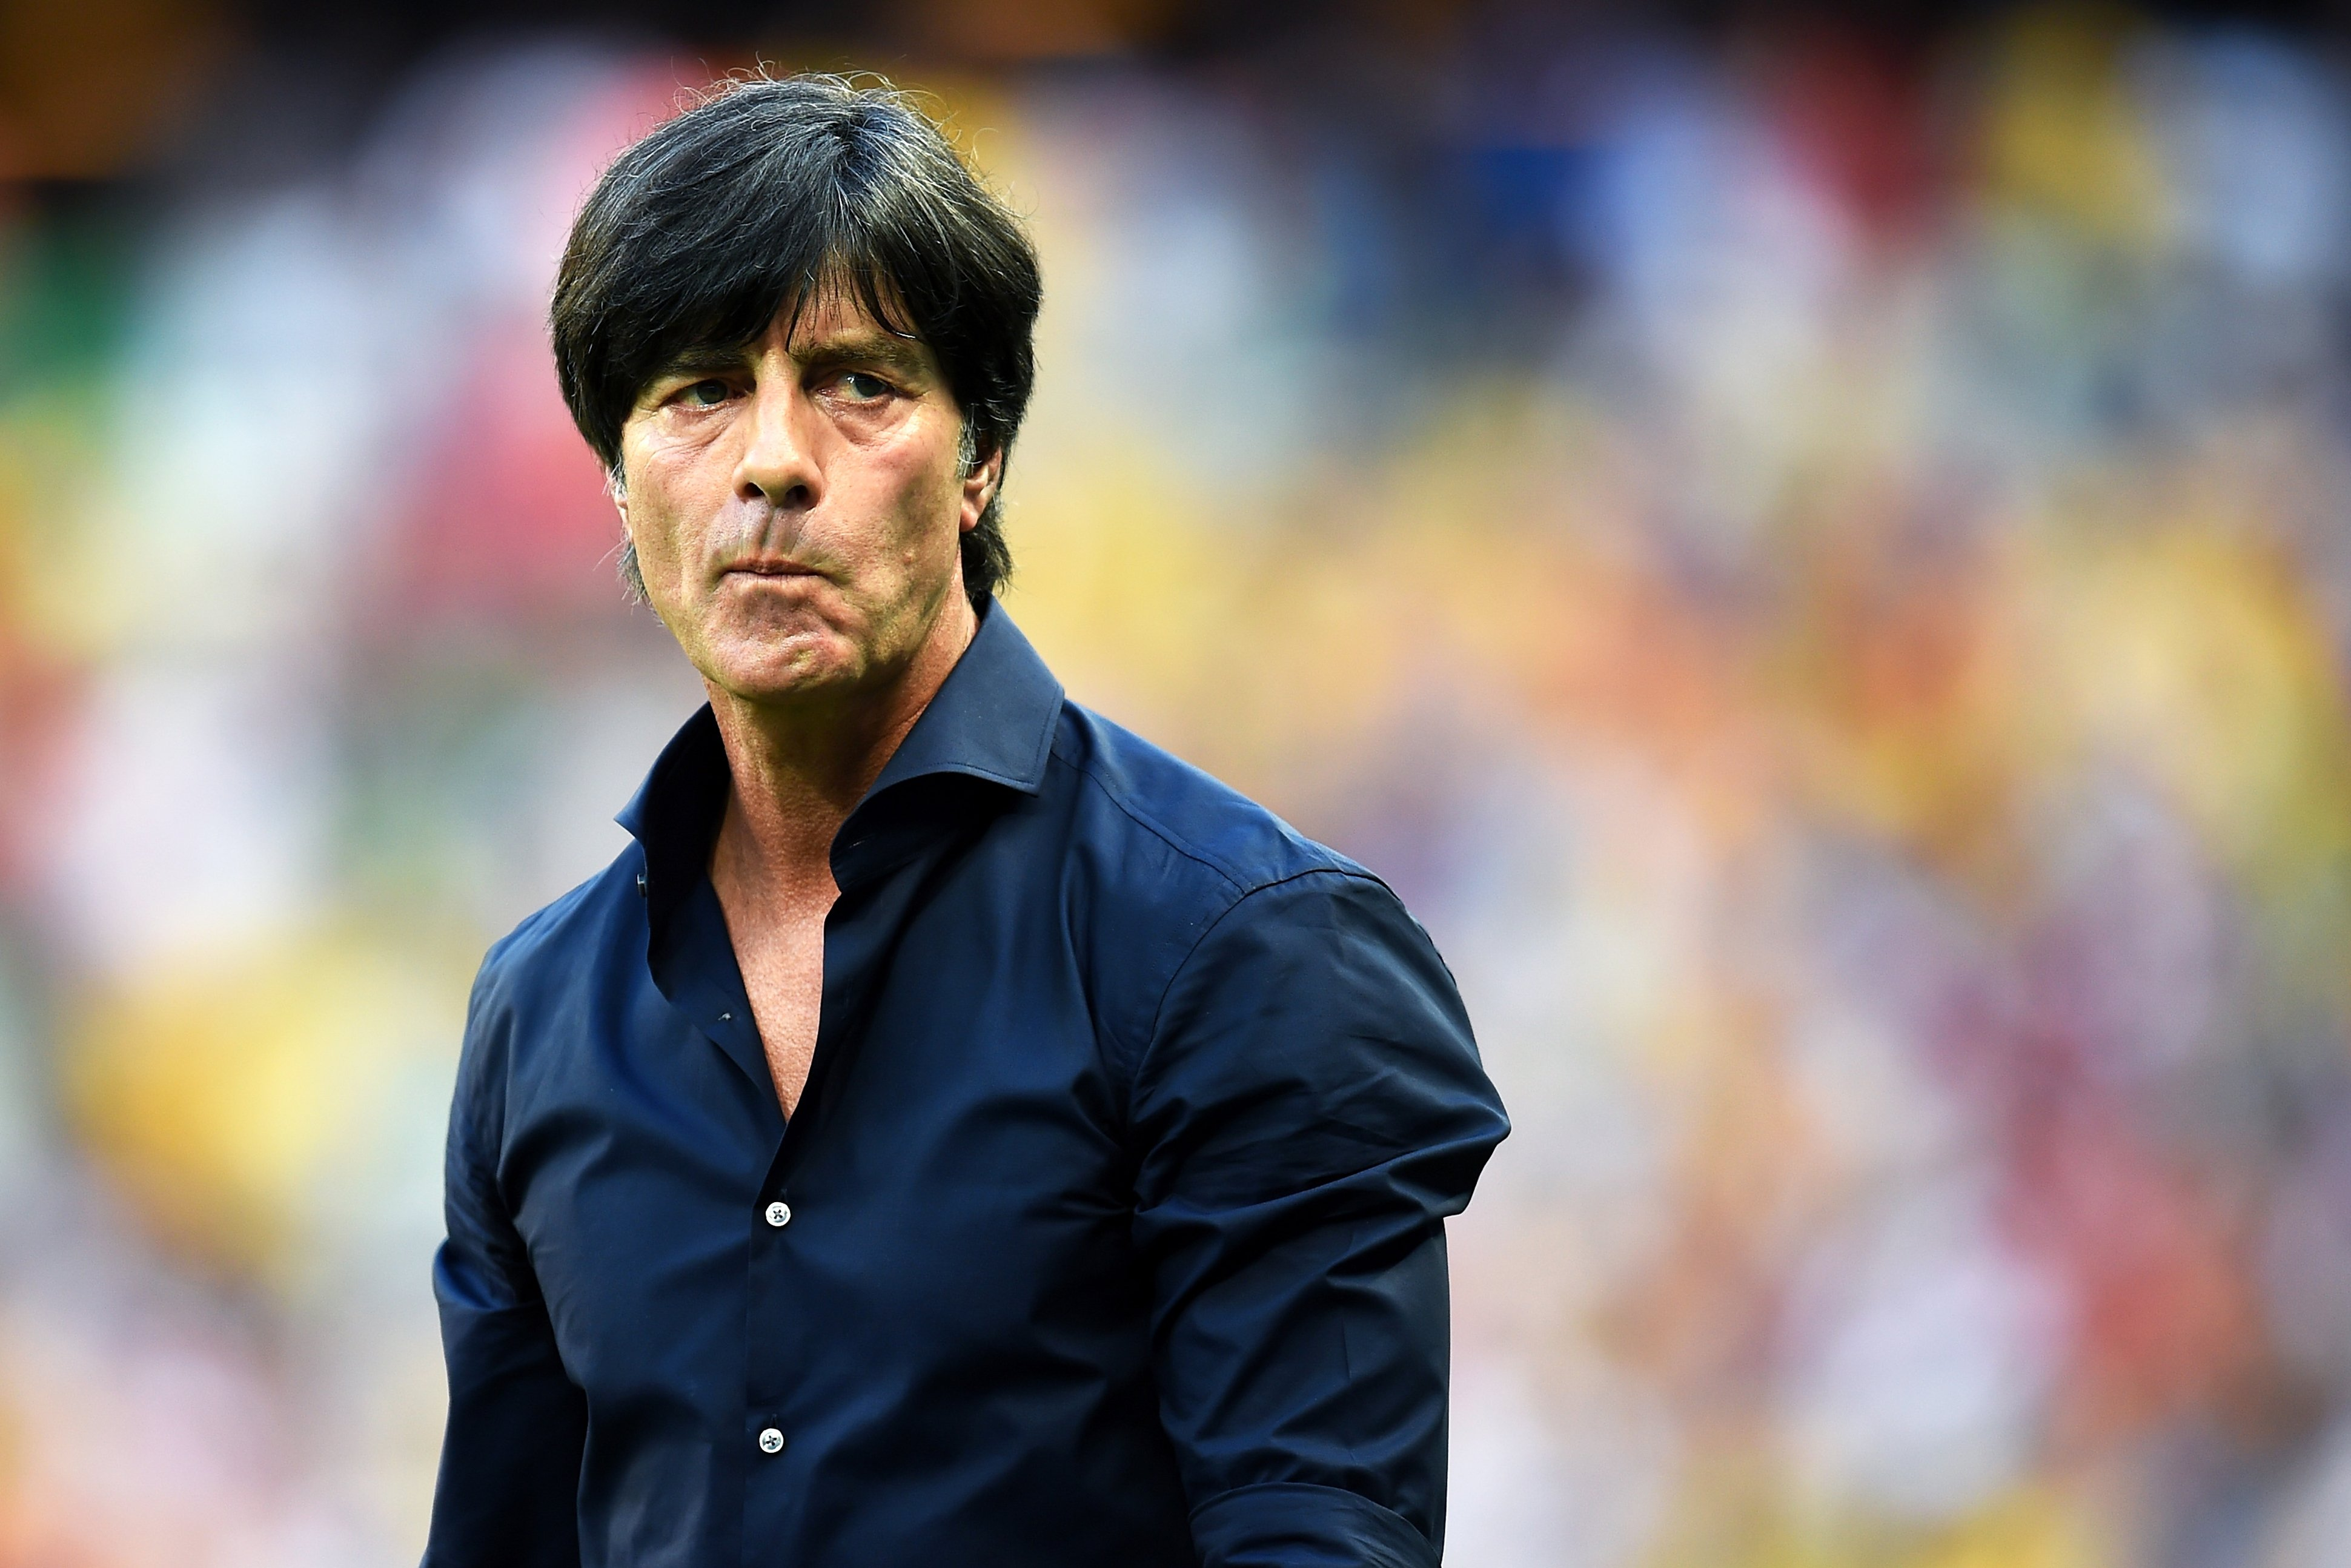 FORTALEZA, BRAZIL - JUNE 21:  Head coach Joachim Loew of Germany looks on during the 2014 FIFA World Cup Brazil Group G match between Germany and Ghana at Castelao on June 21, 2014 in Fortaleza, Brazil.  (Photo by Lars Baron - FIFA/FIFA via Getty Images)